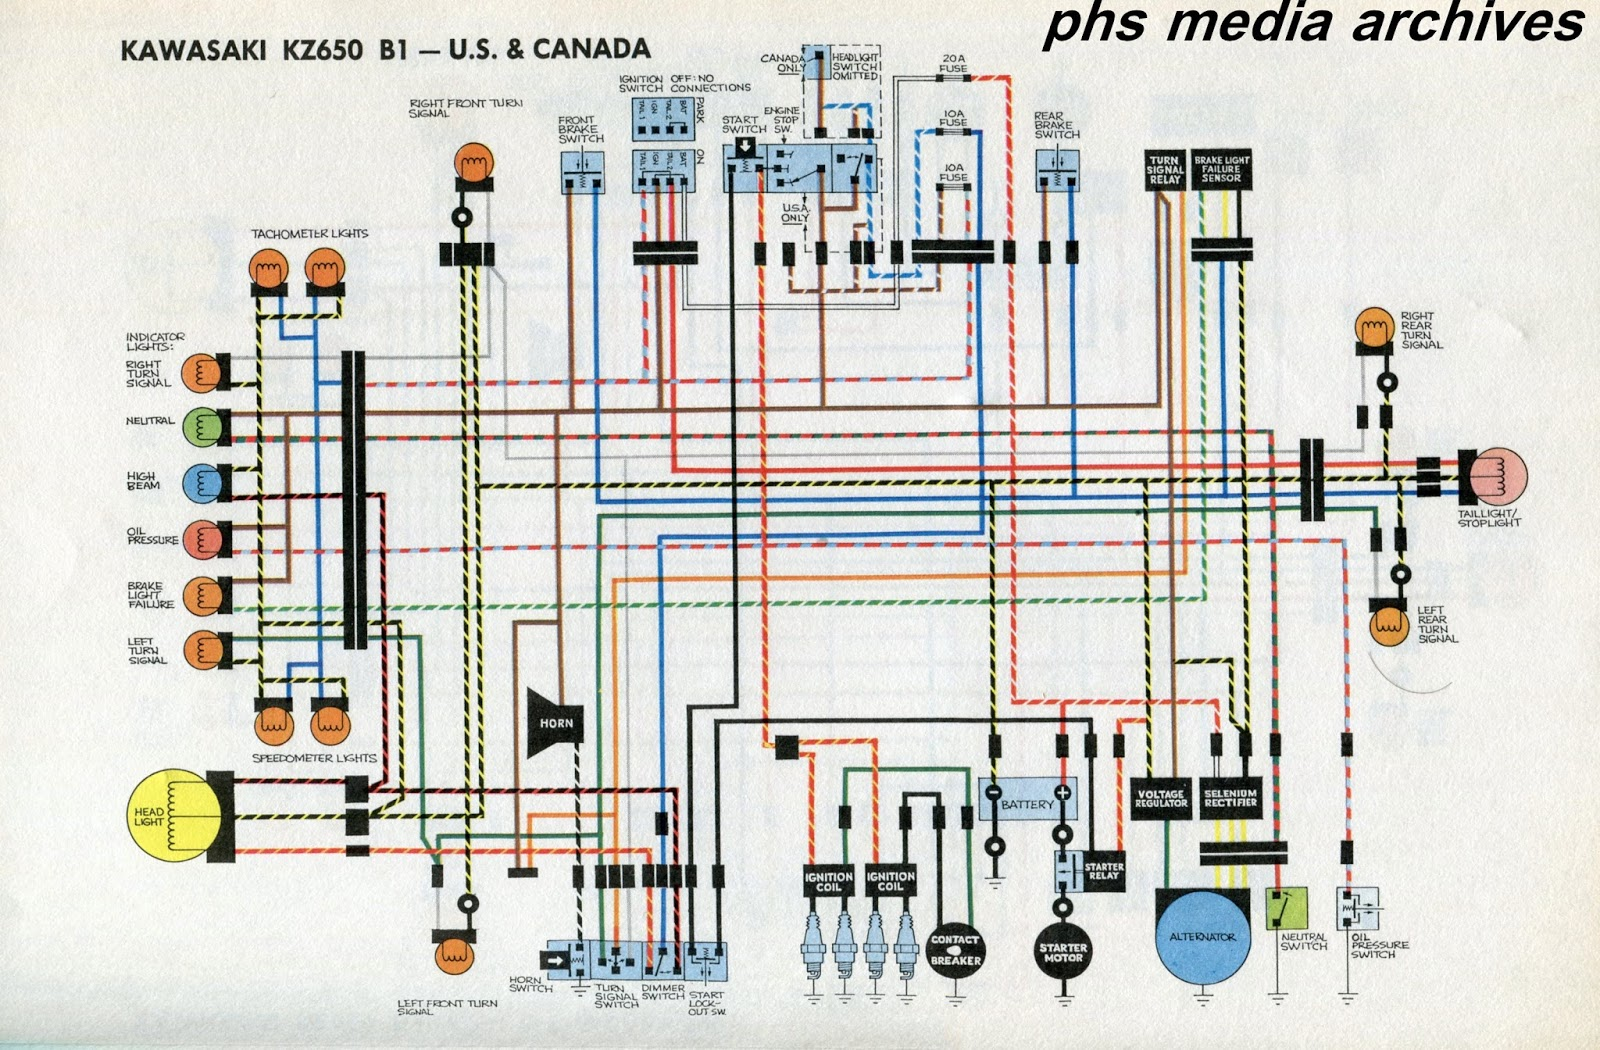 Tech Series Kawasaki Kz650 Wiring Diagrams Phscollectorcarworld American Standard Wire Diagram The Above Chart Covers North B1 Bikes For United States And Canadaa Nice Feature Here Is Wires Elements Are In Color Easier